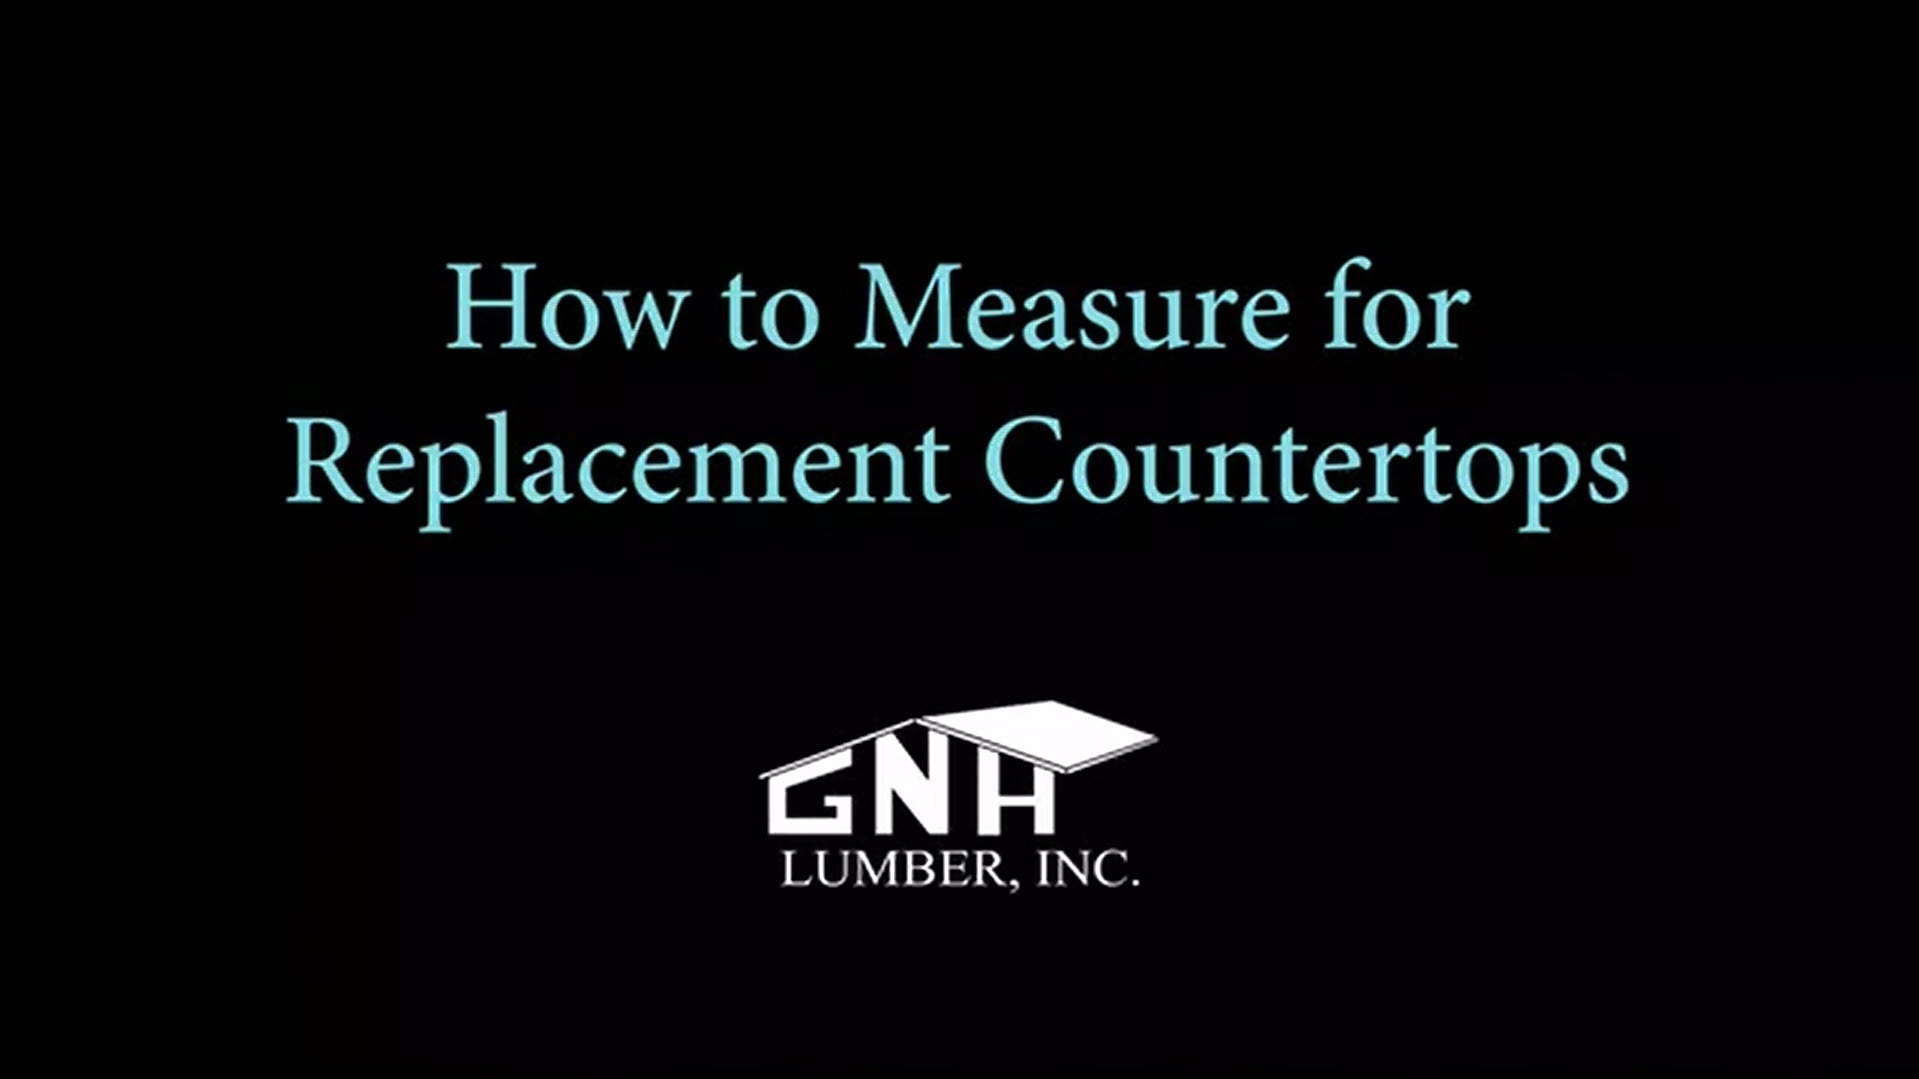 Watch video: How to Measure for Replacement Countertops